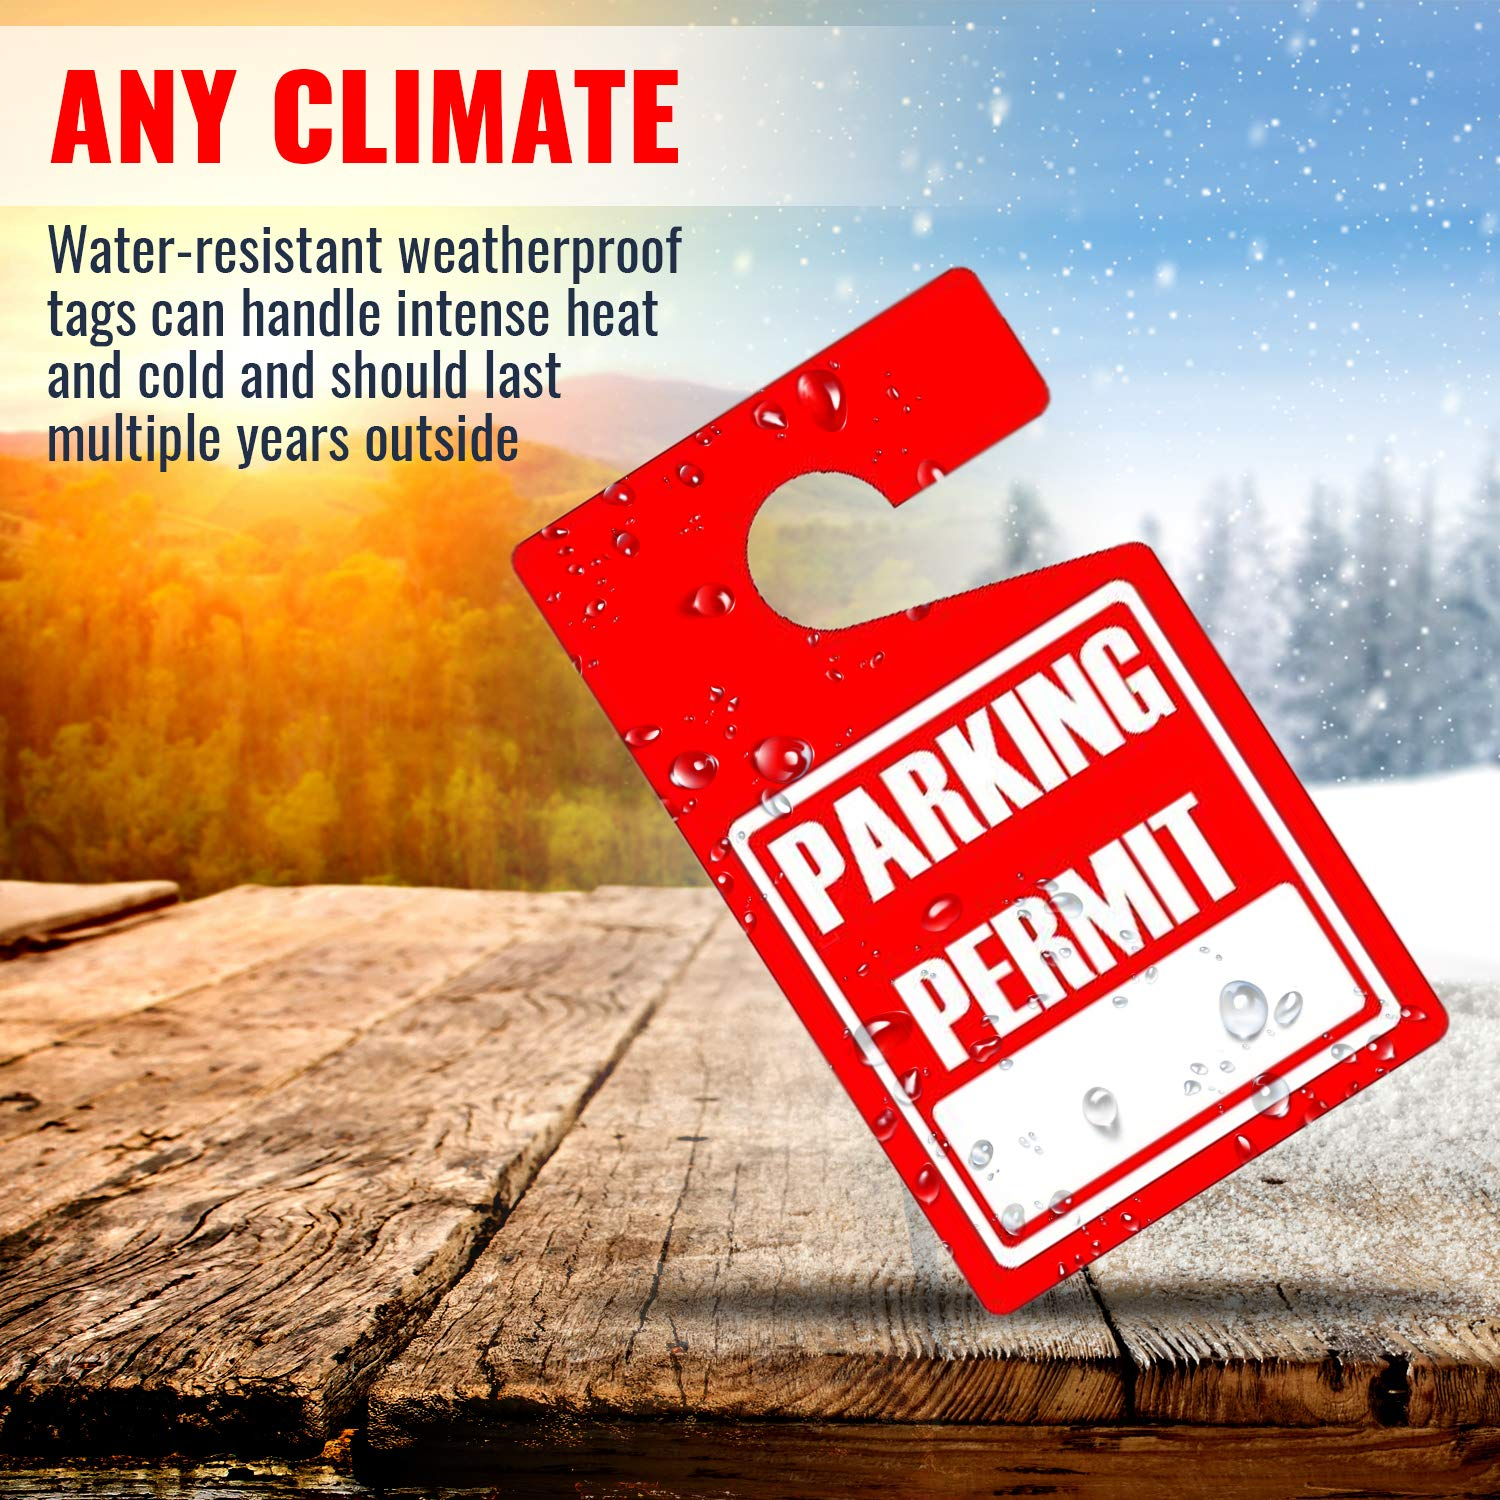 MESS Parking Permit Hang Tags (Red) - 50 Tough Thick Re-Usable Weatherproof Passes for Car Or Vehicle Rear View Mirror/Perfect for Employees, Residents, Tenants and More - 3'' x 5''